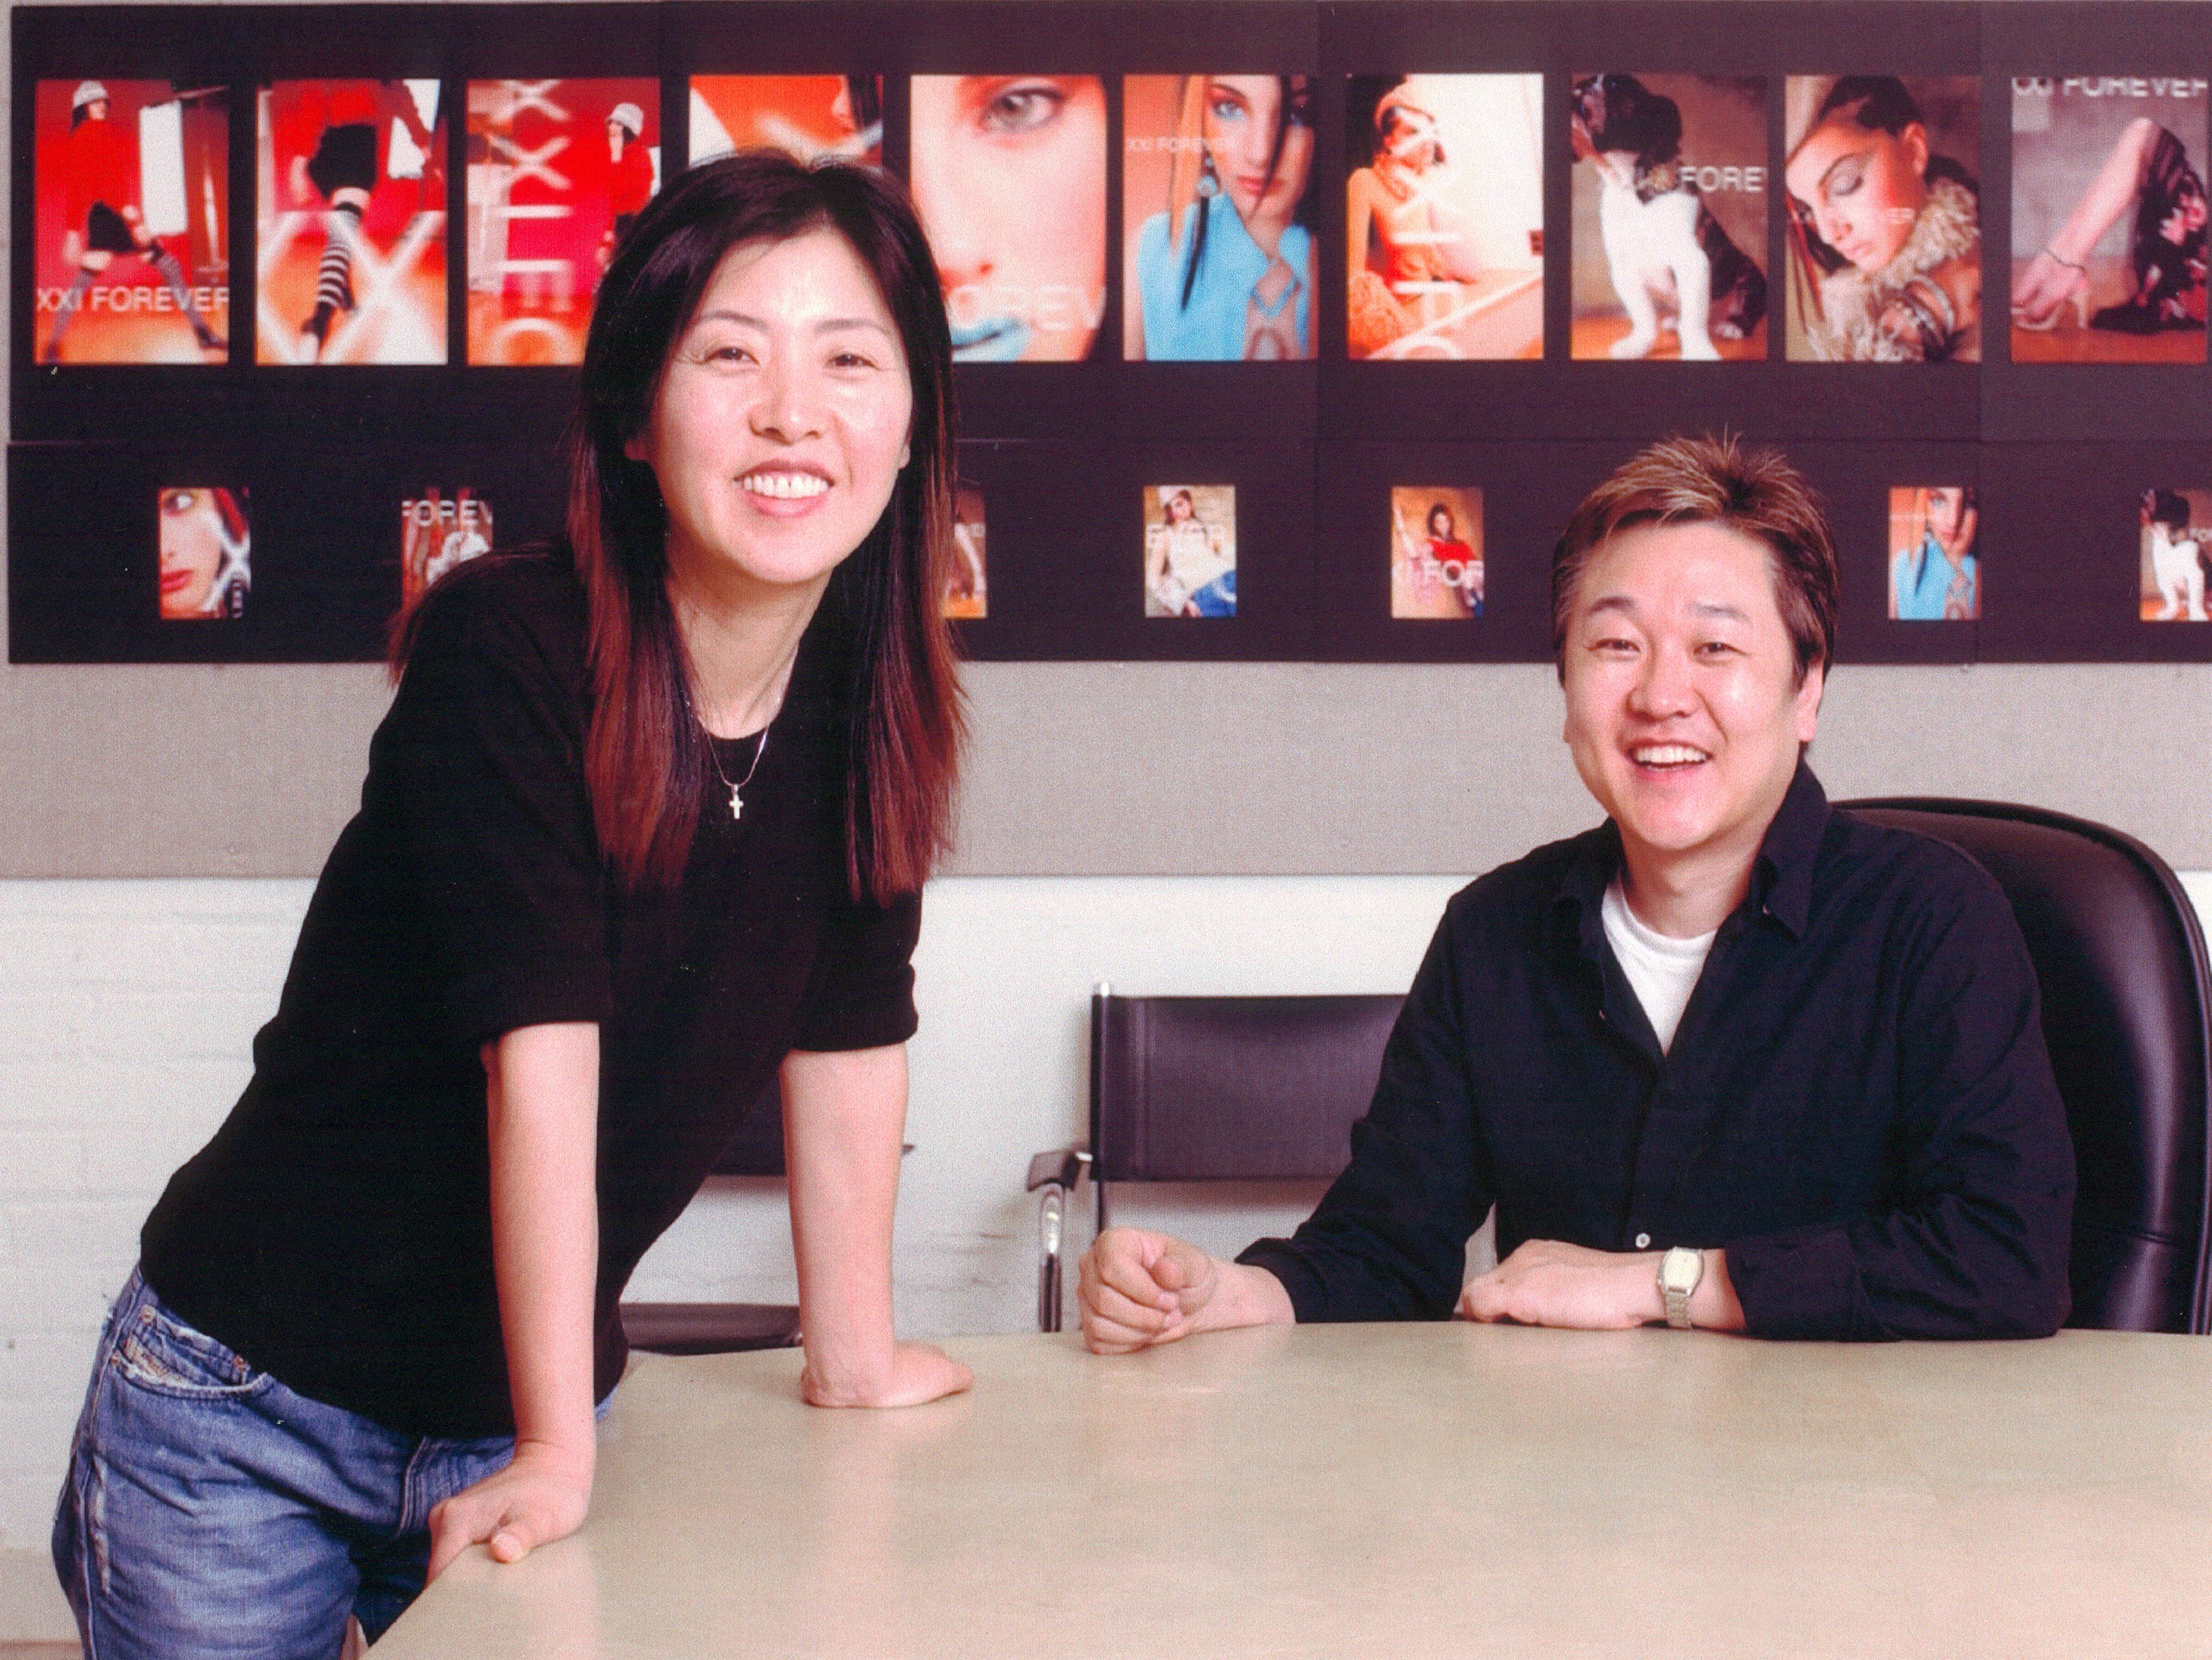 The inspiring rags-to-riches story of Forever 21 husband-and-wife co-founders.